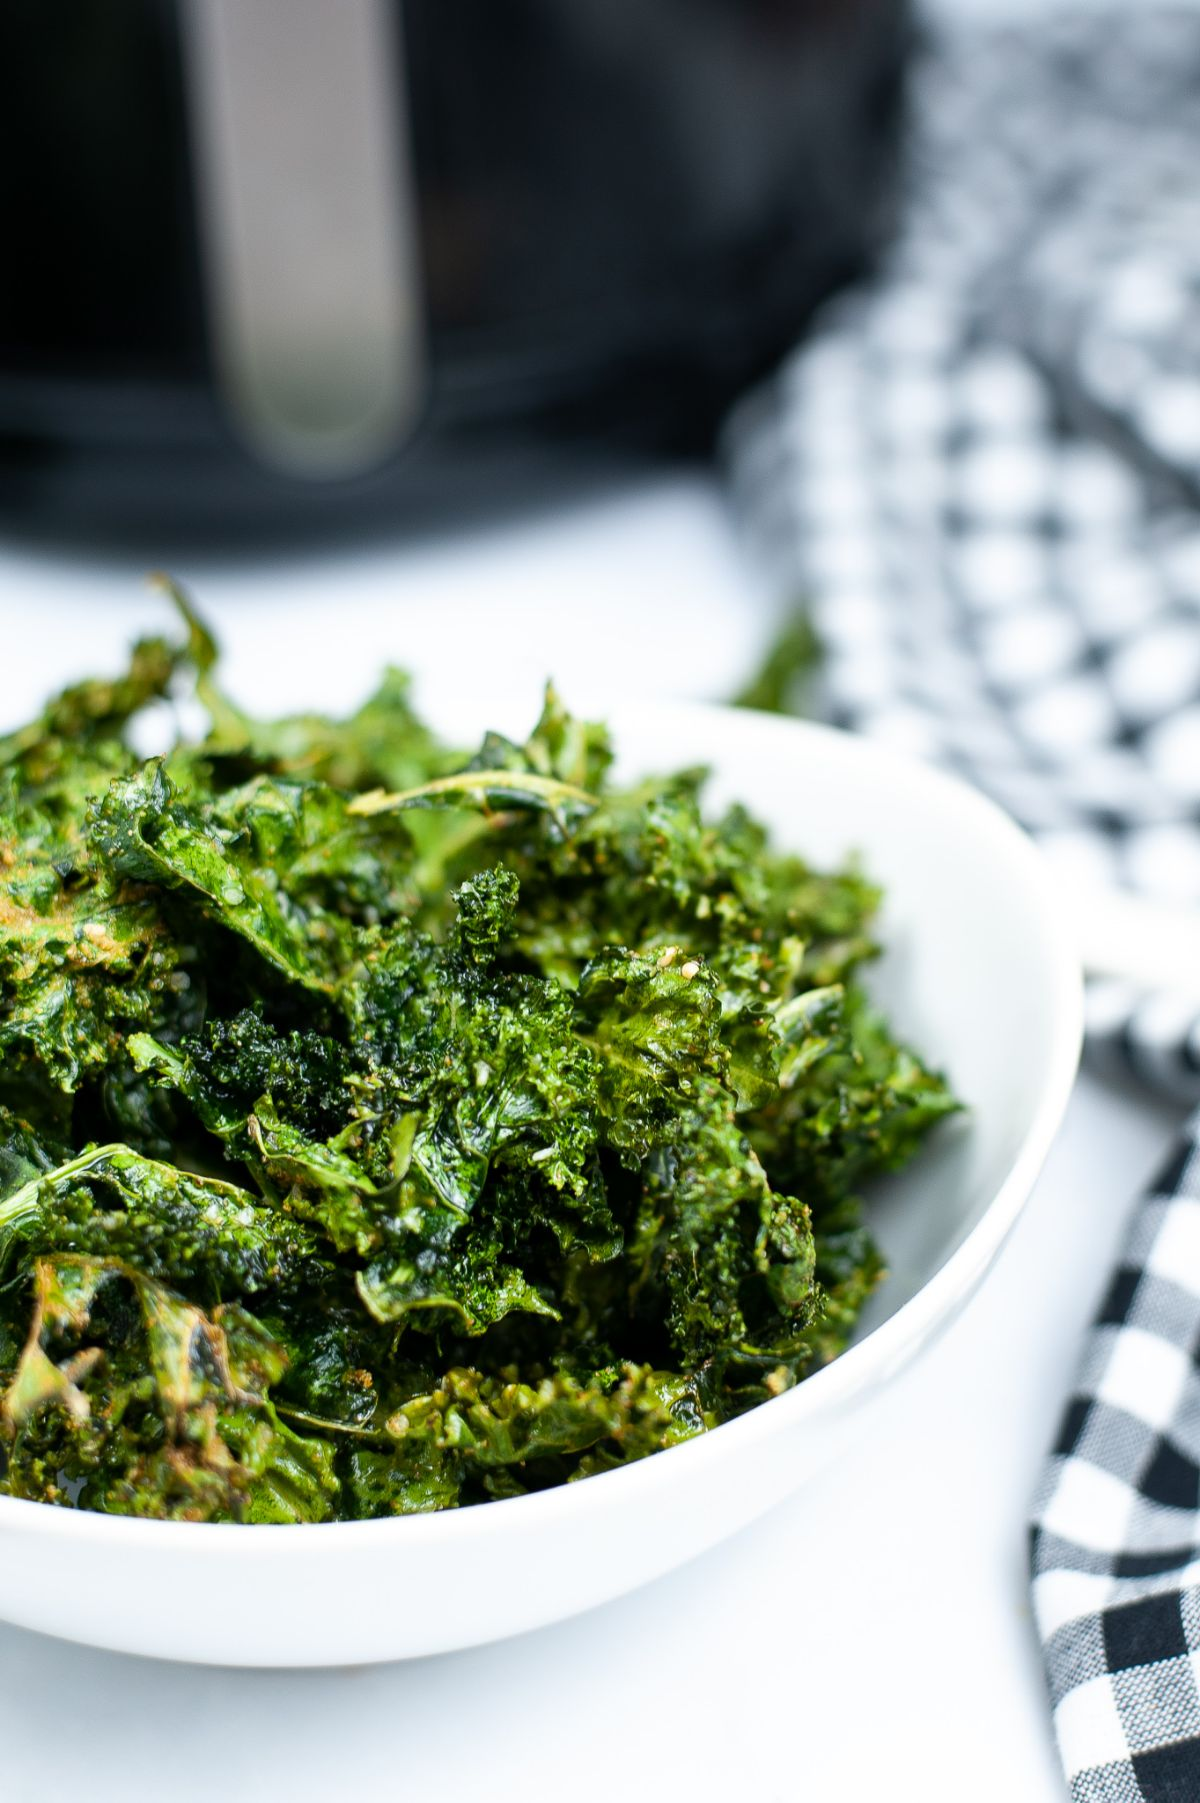 A vertical close up shot of the Air Fryer Kale chips highlighting the crispy Kale leaves.